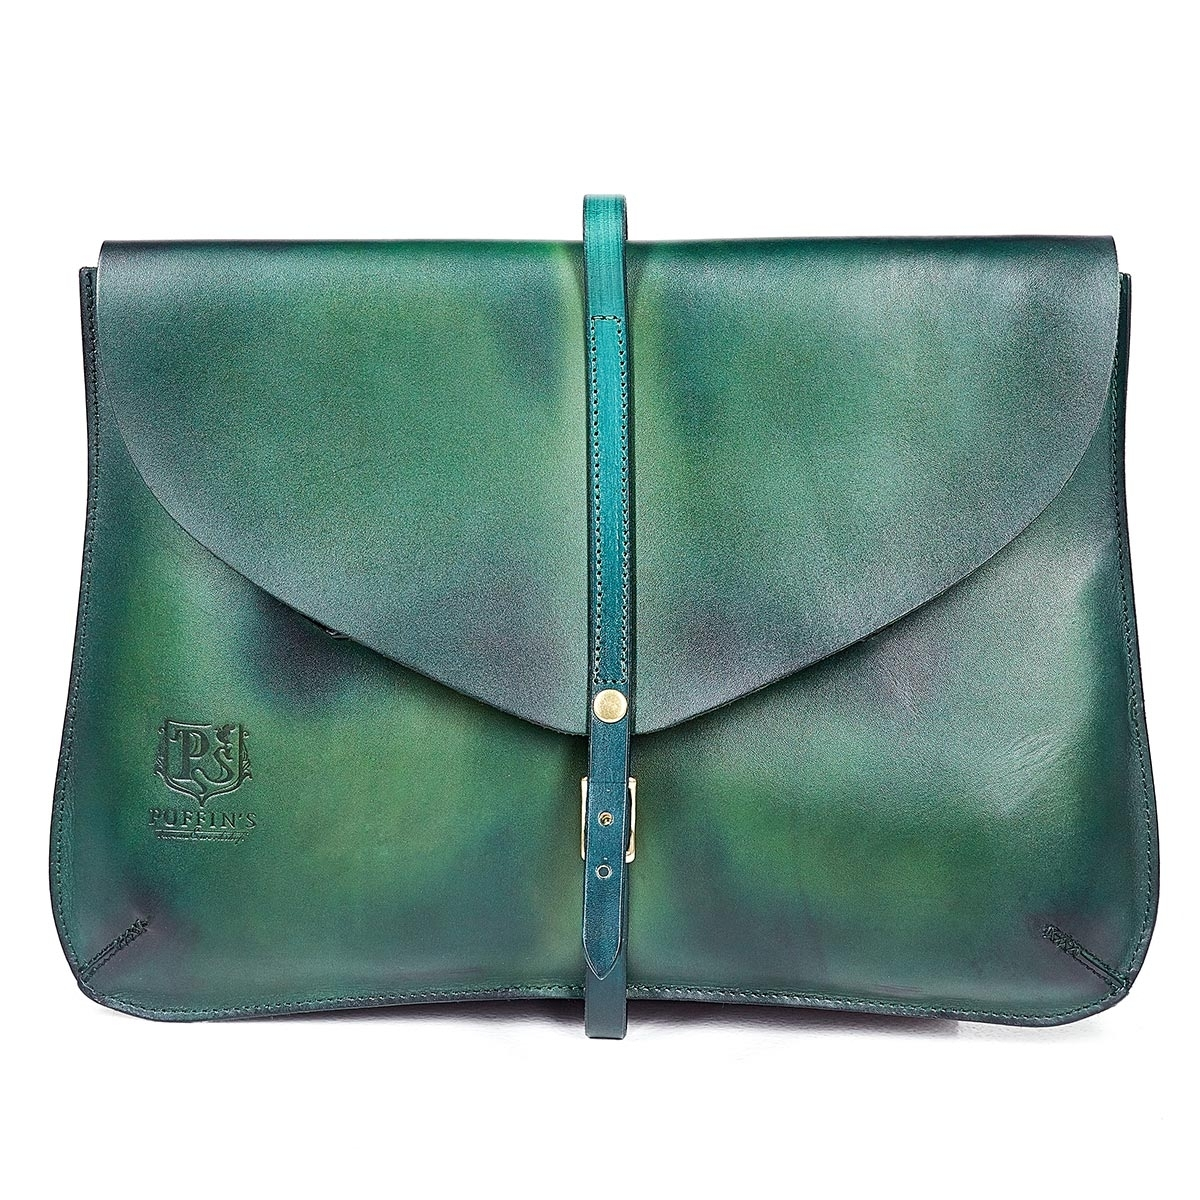 Elegant clutch CELLO / 13'' MacBook case grassy green & bluemarine